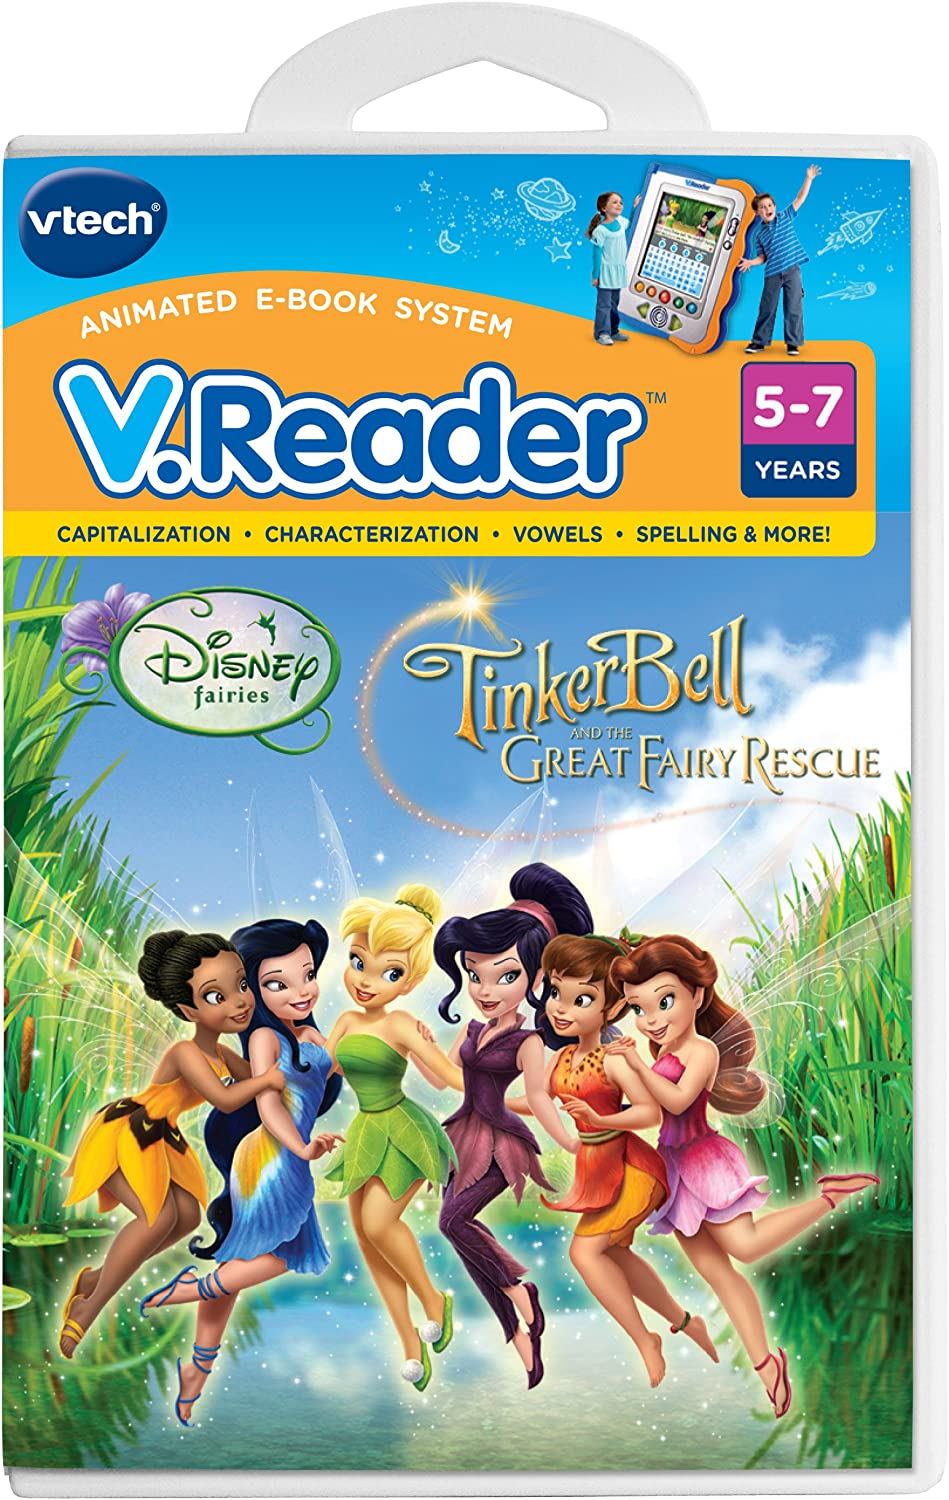 Amazon Com Vtech V Reader Software Disney S Fairies Tinkerbell And The Great Fairy Rescue Toys Games